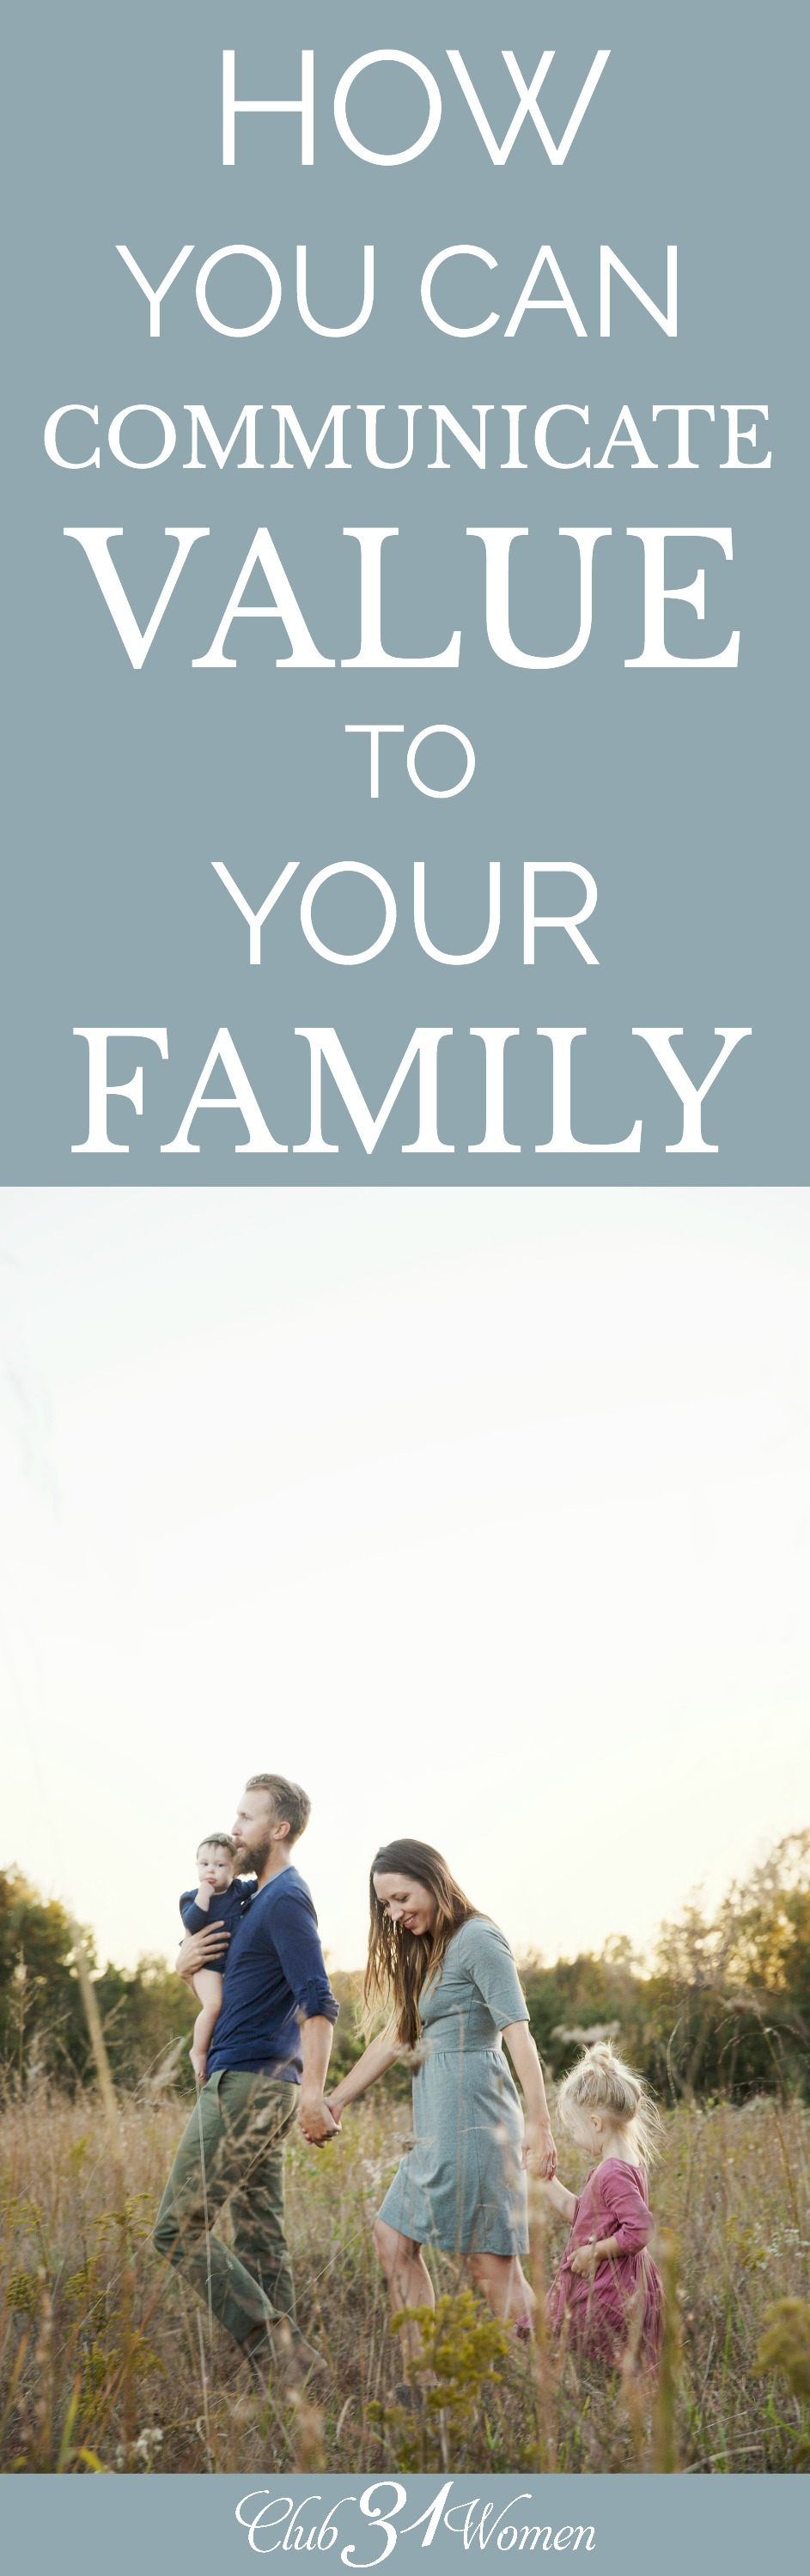 Do you know that God is for you and when you embrace that truth you can extend that value out to others, such as your family? Be a champion for your family! via @Club31Women